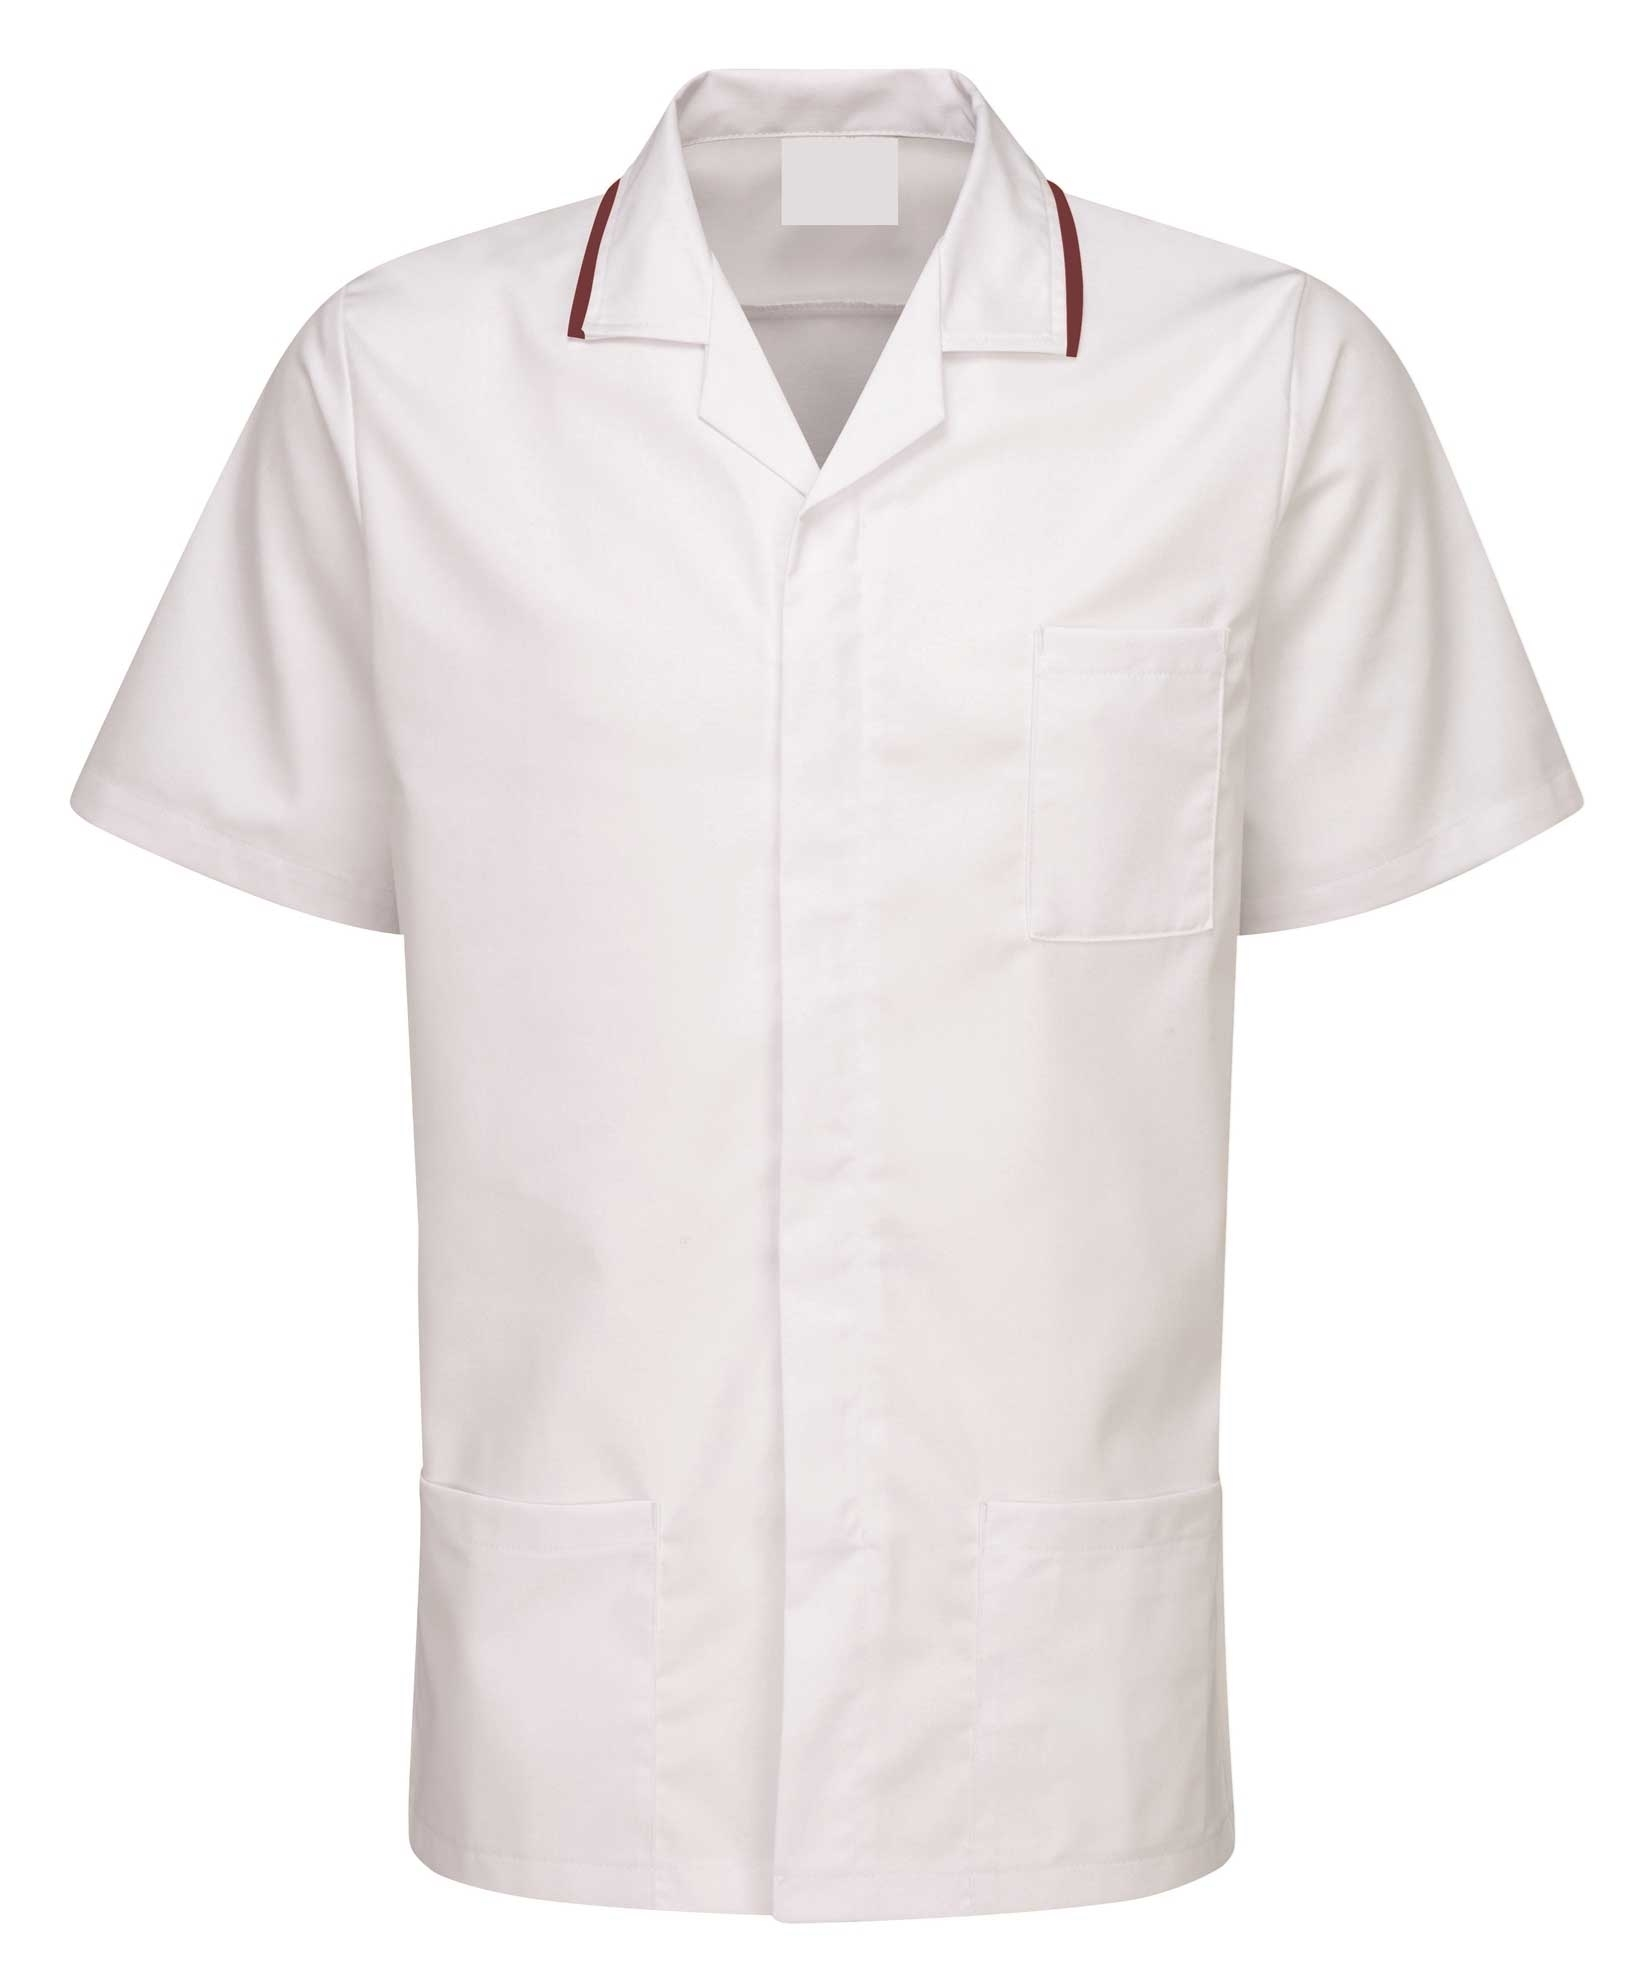 Picture of Advantage Front Fastening Tunic - White/Burgundy